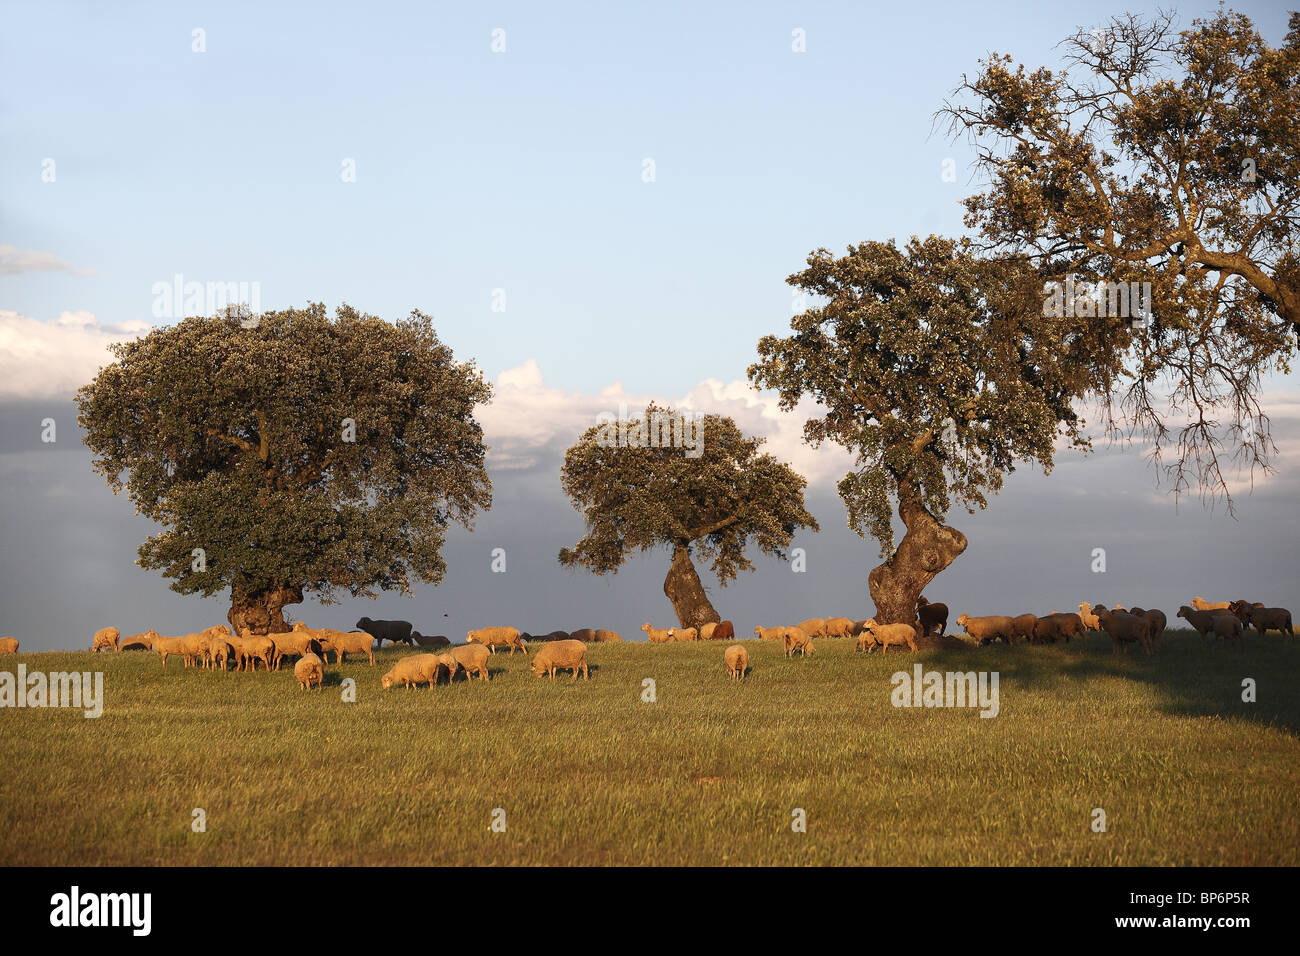 Dehesa, a wooded pastureland, with grazing domestic sheep. - Stock Image